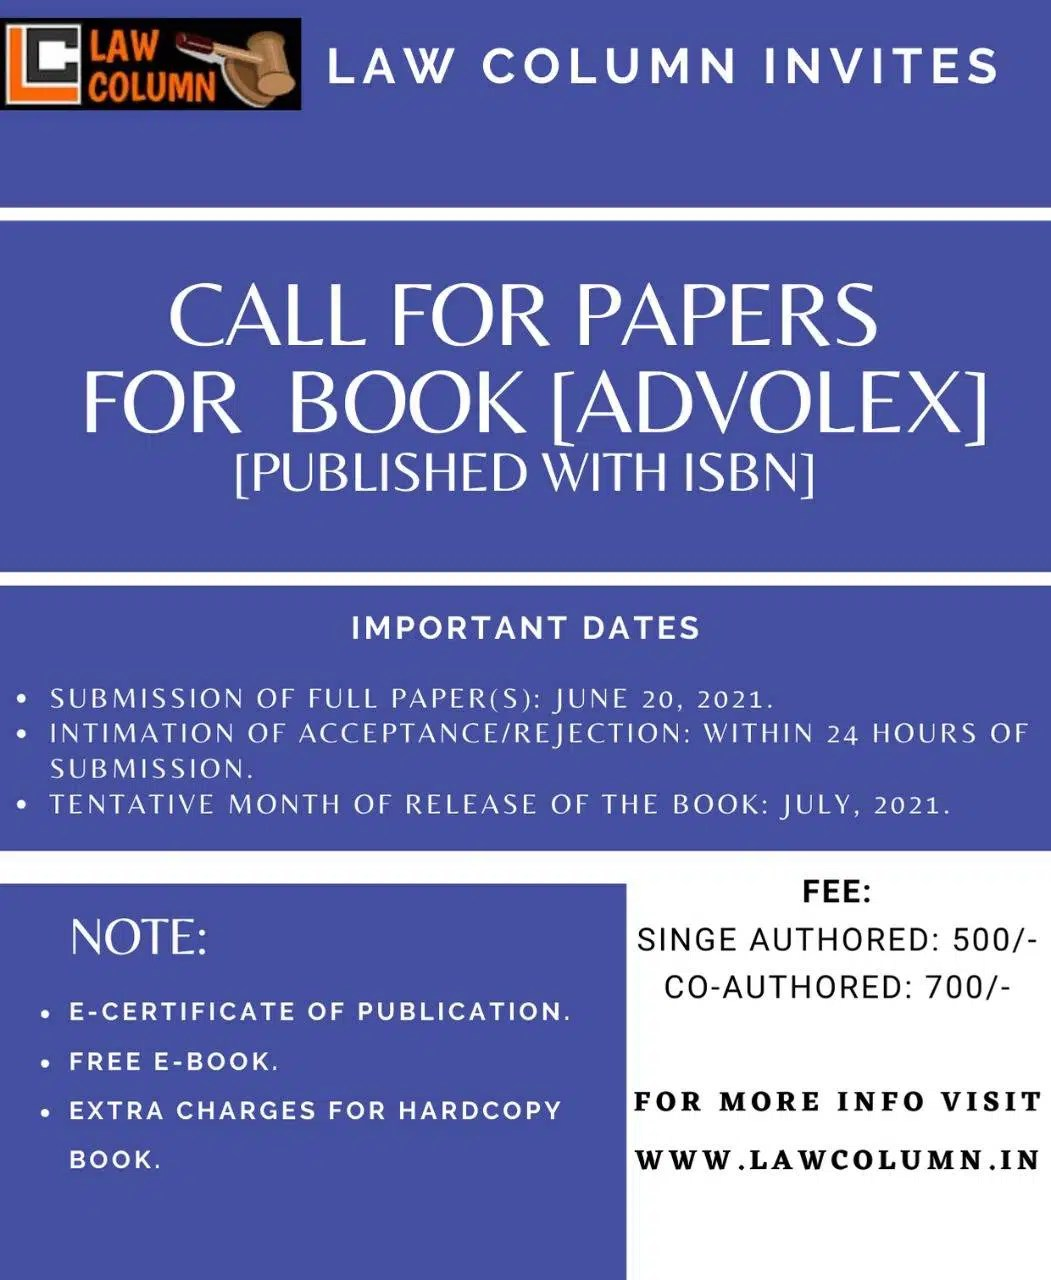 Call For Papers for book 'AdvoLex by Law Column' Published with Isbn : Submit By June 20, 2021